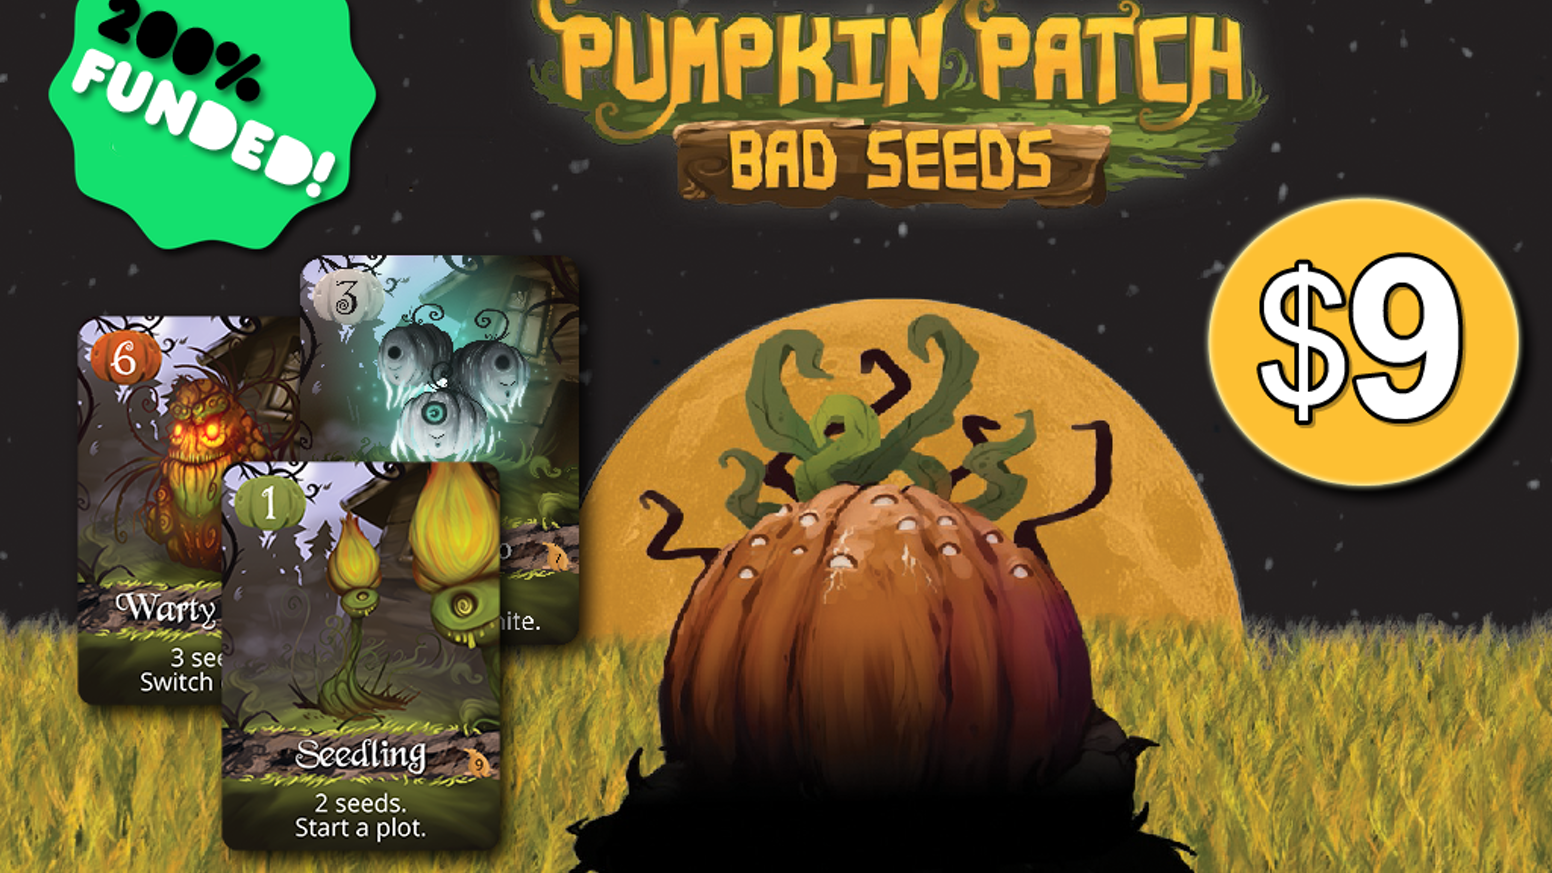 Plant spooky pumpkins while avoiding pesky crows! A quick-playing, pocket-sized, pumpkin-filled strategy game for 1-3 players.